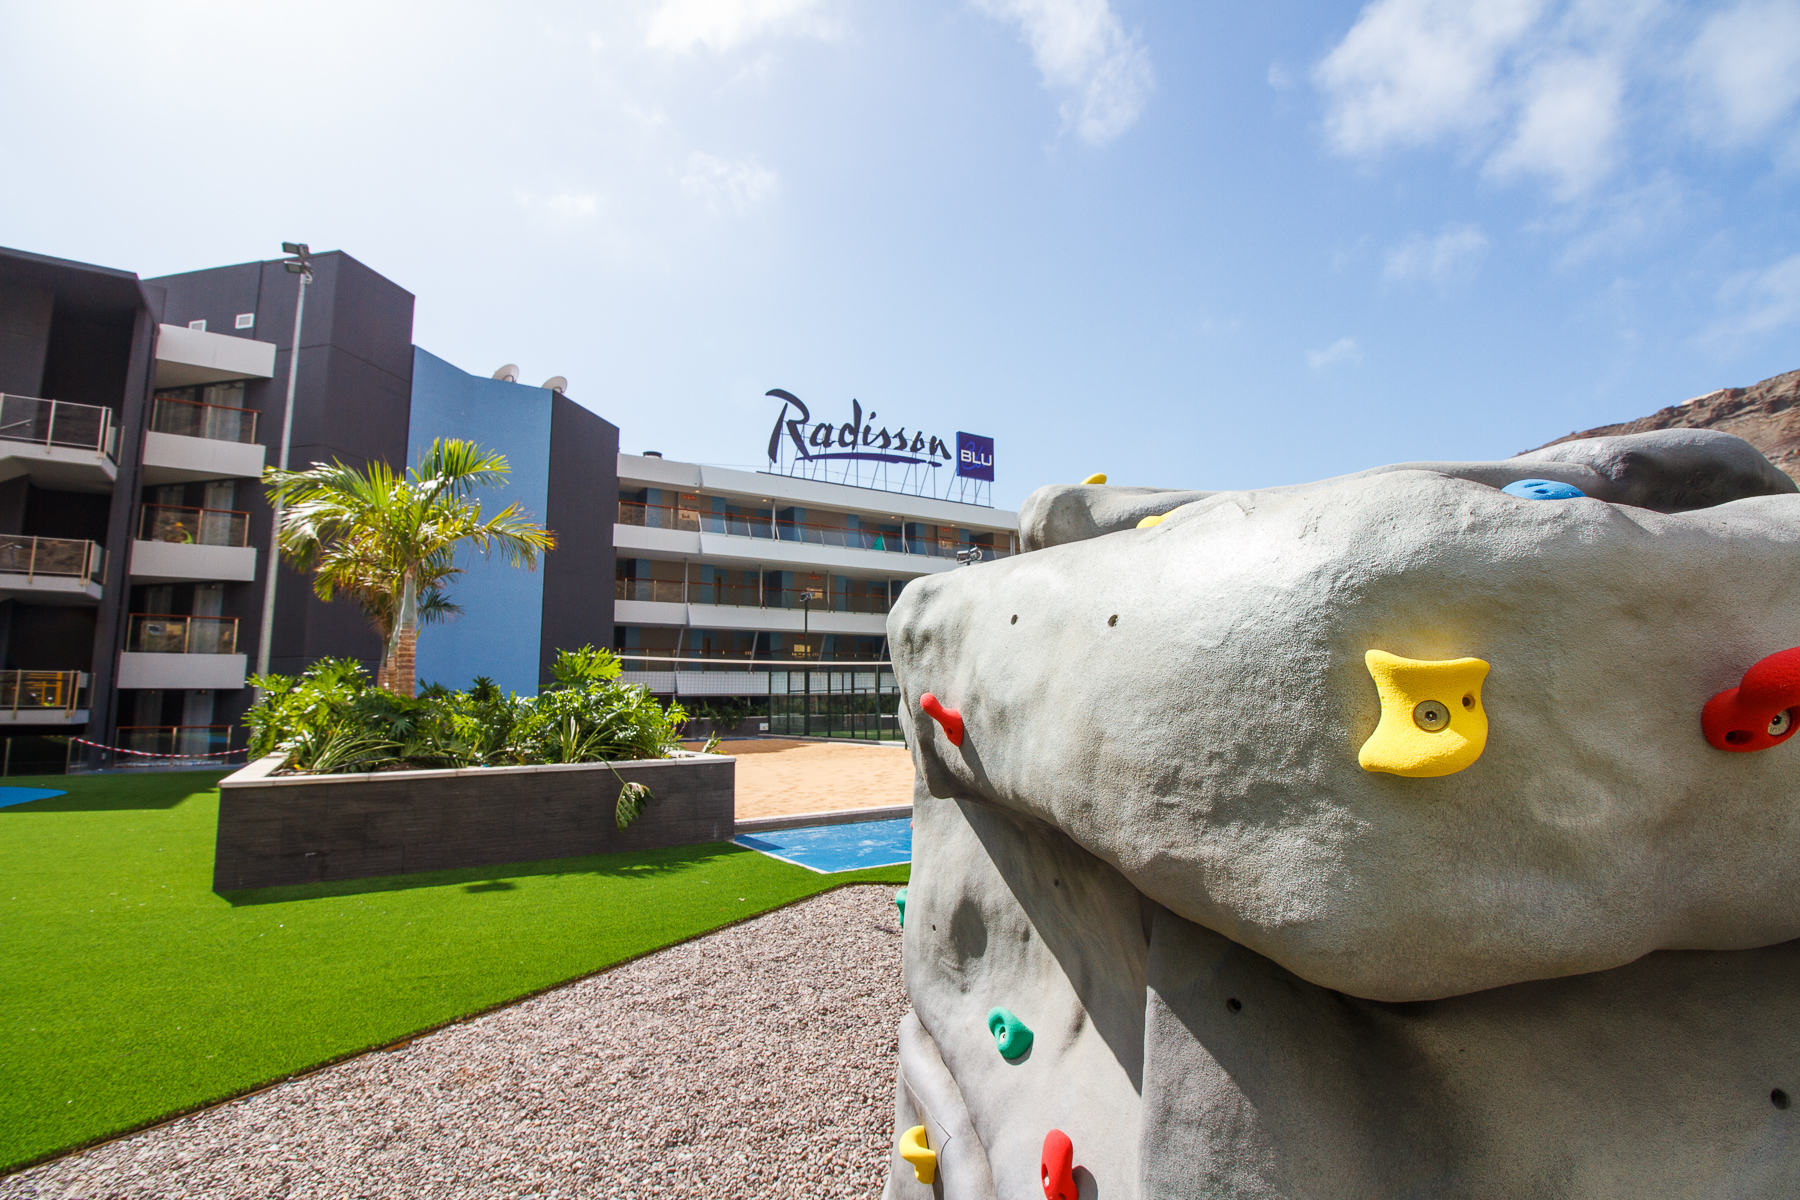 Radisson Blue climbing wall and beach volleyball court